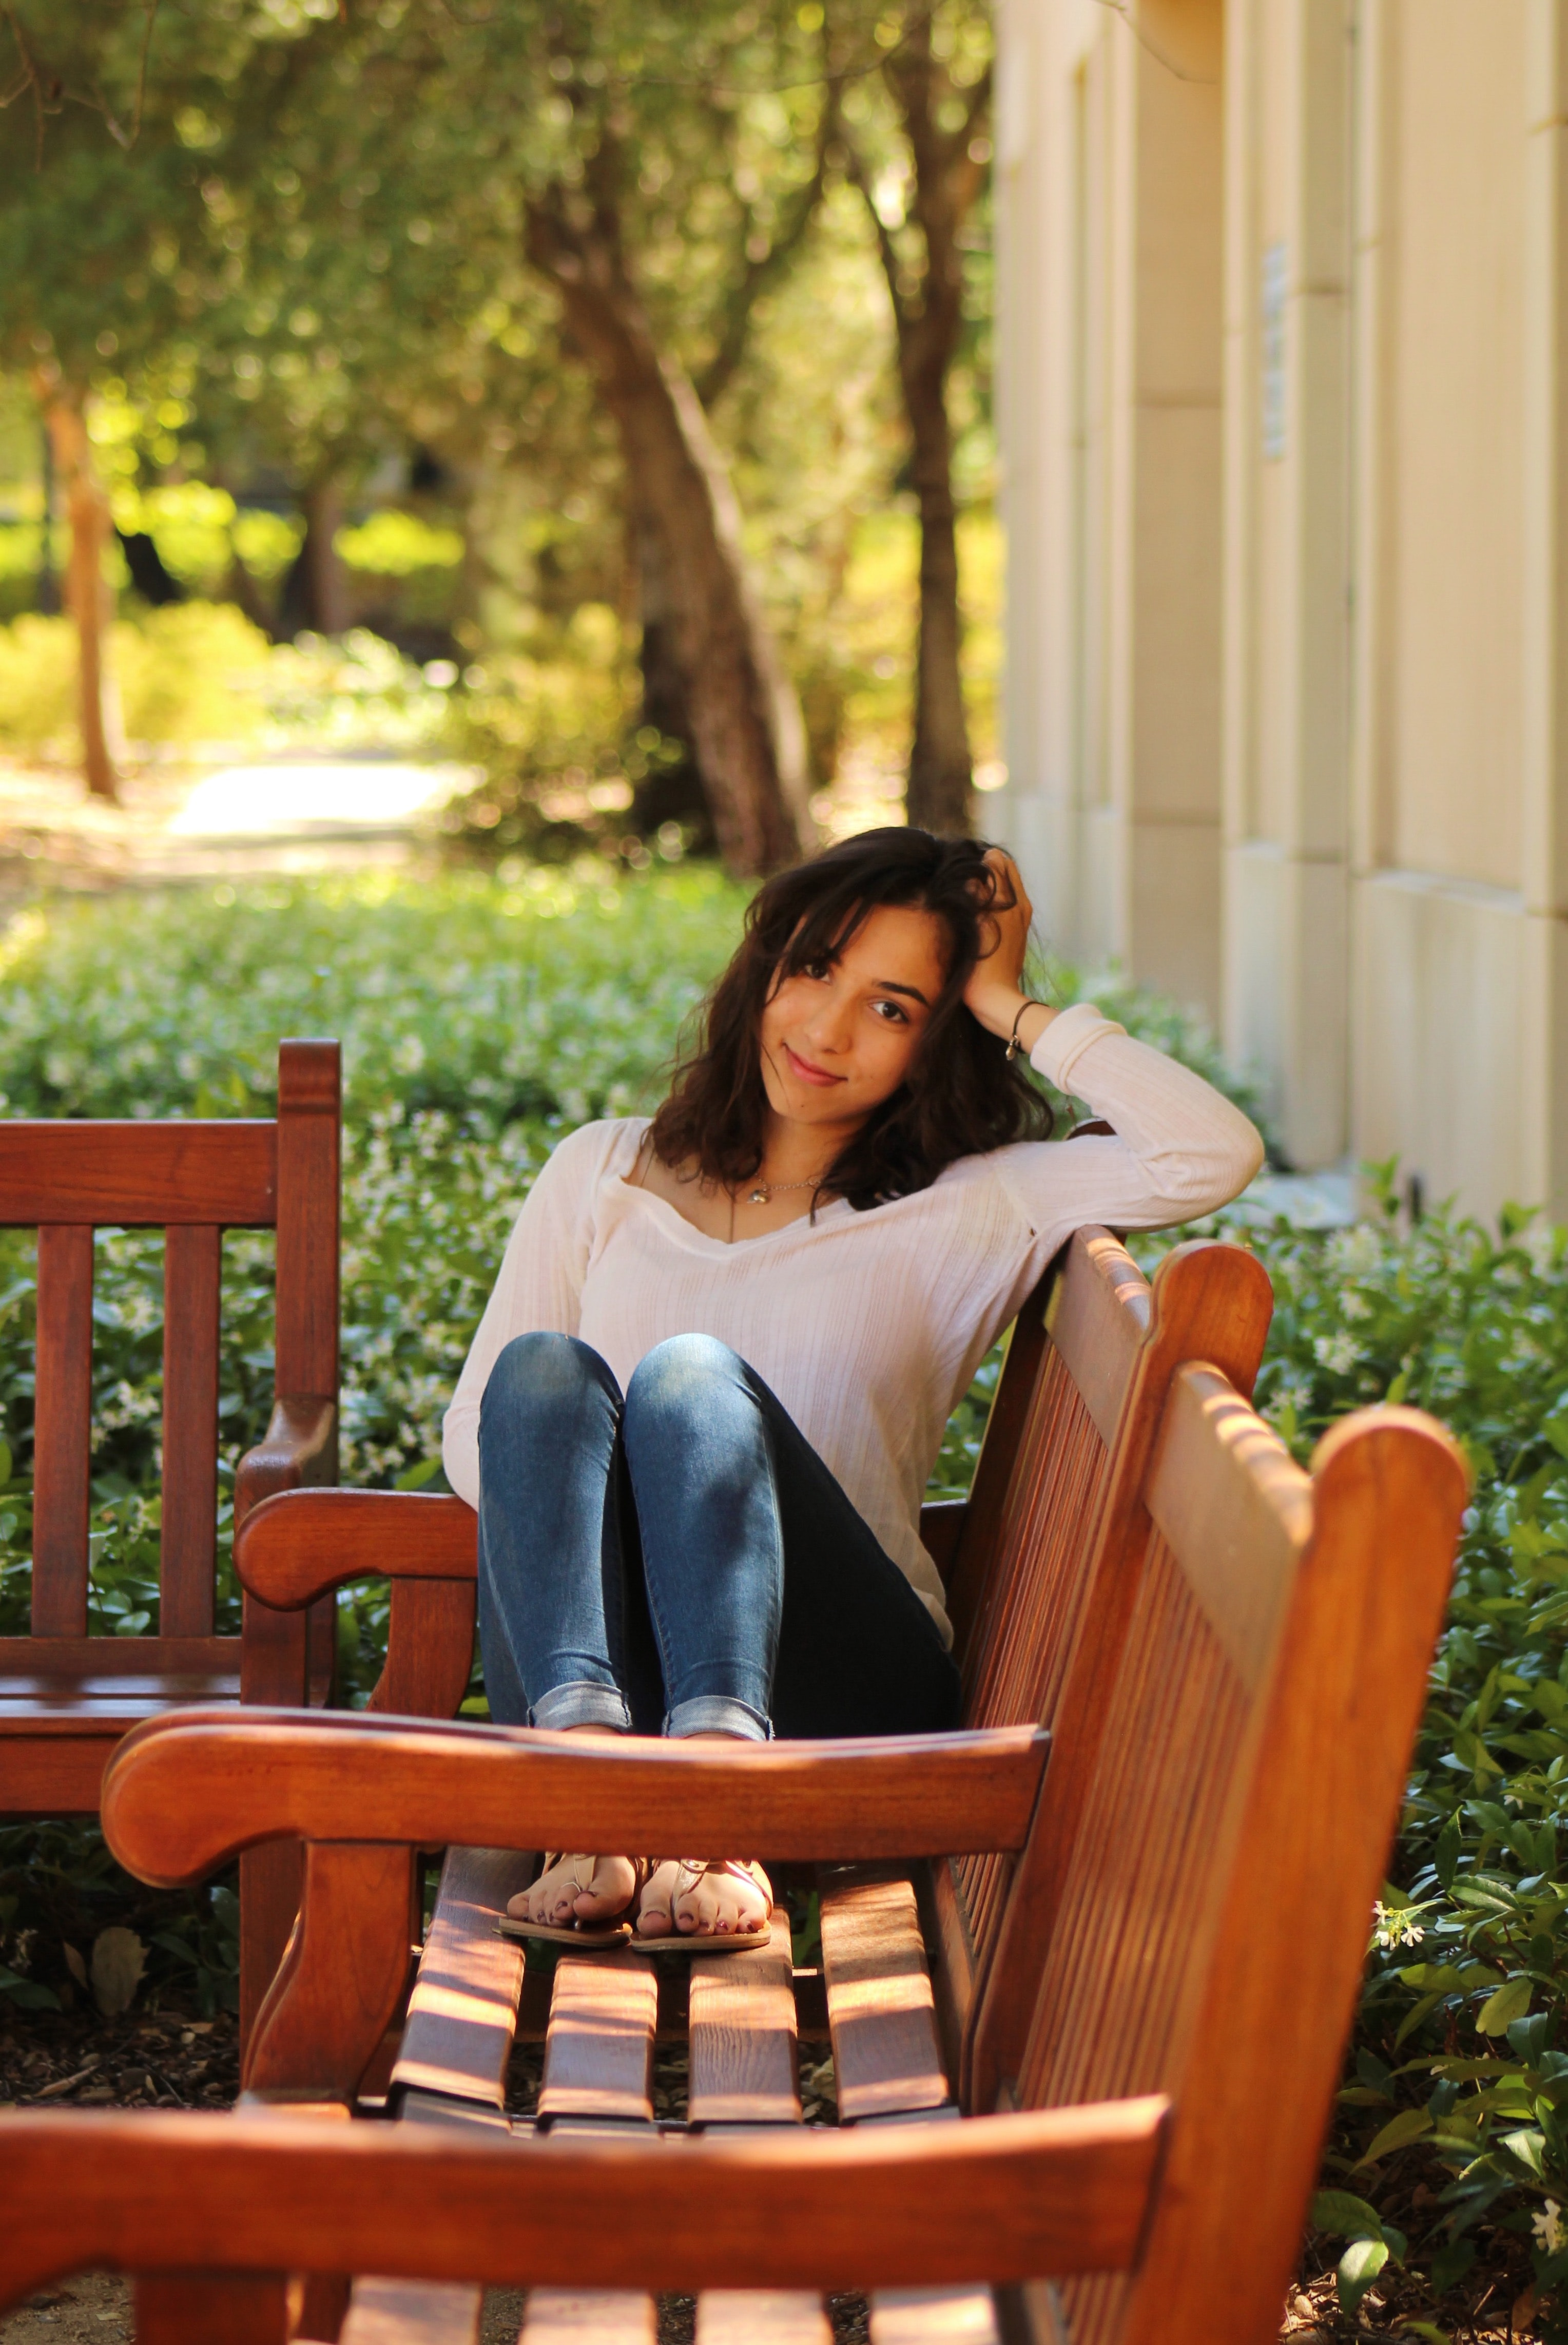 shallow focus photography of woman on bench